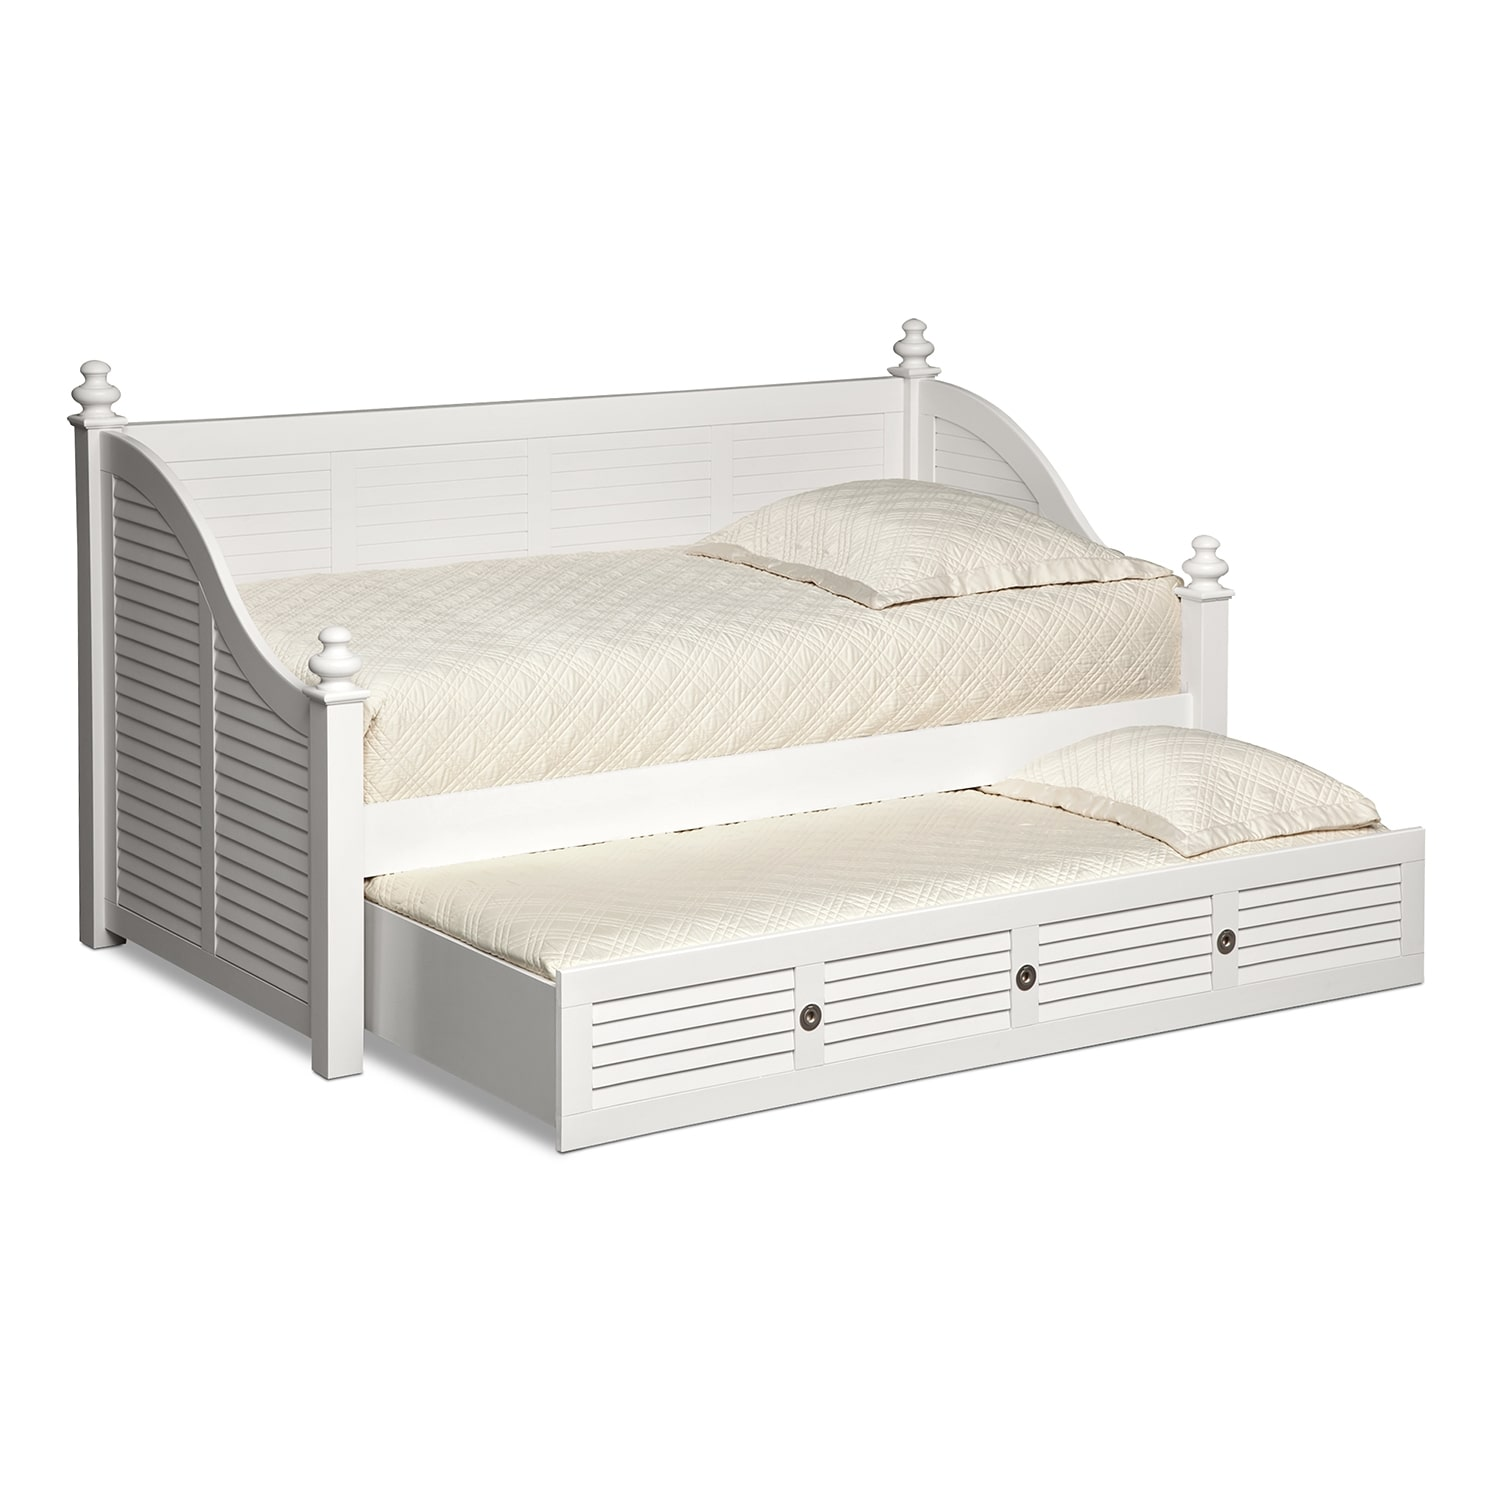 Seaside White II Daybed with Trundle